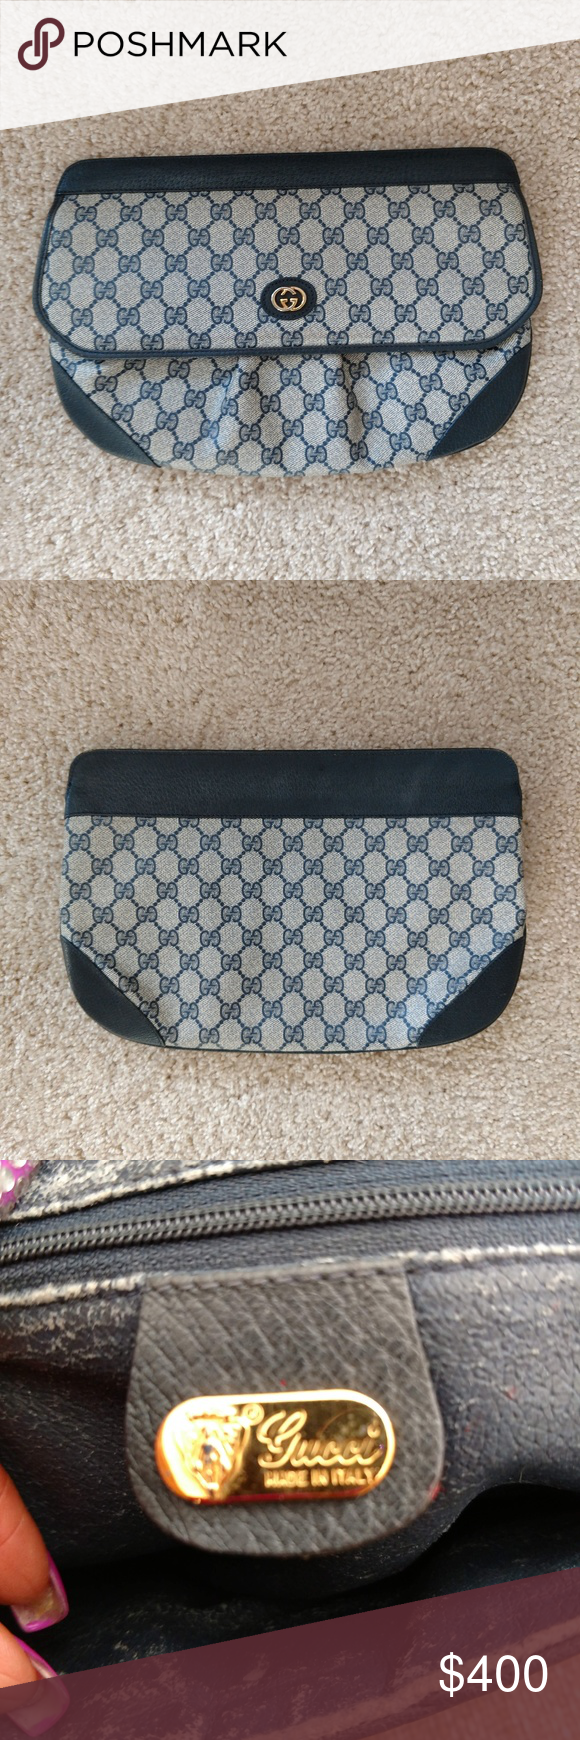 9e764711e98e Blue Vintage Gucci Clutch Handbag Authentic vintage Gucci clutch handbag in great  condition! Blue genuine